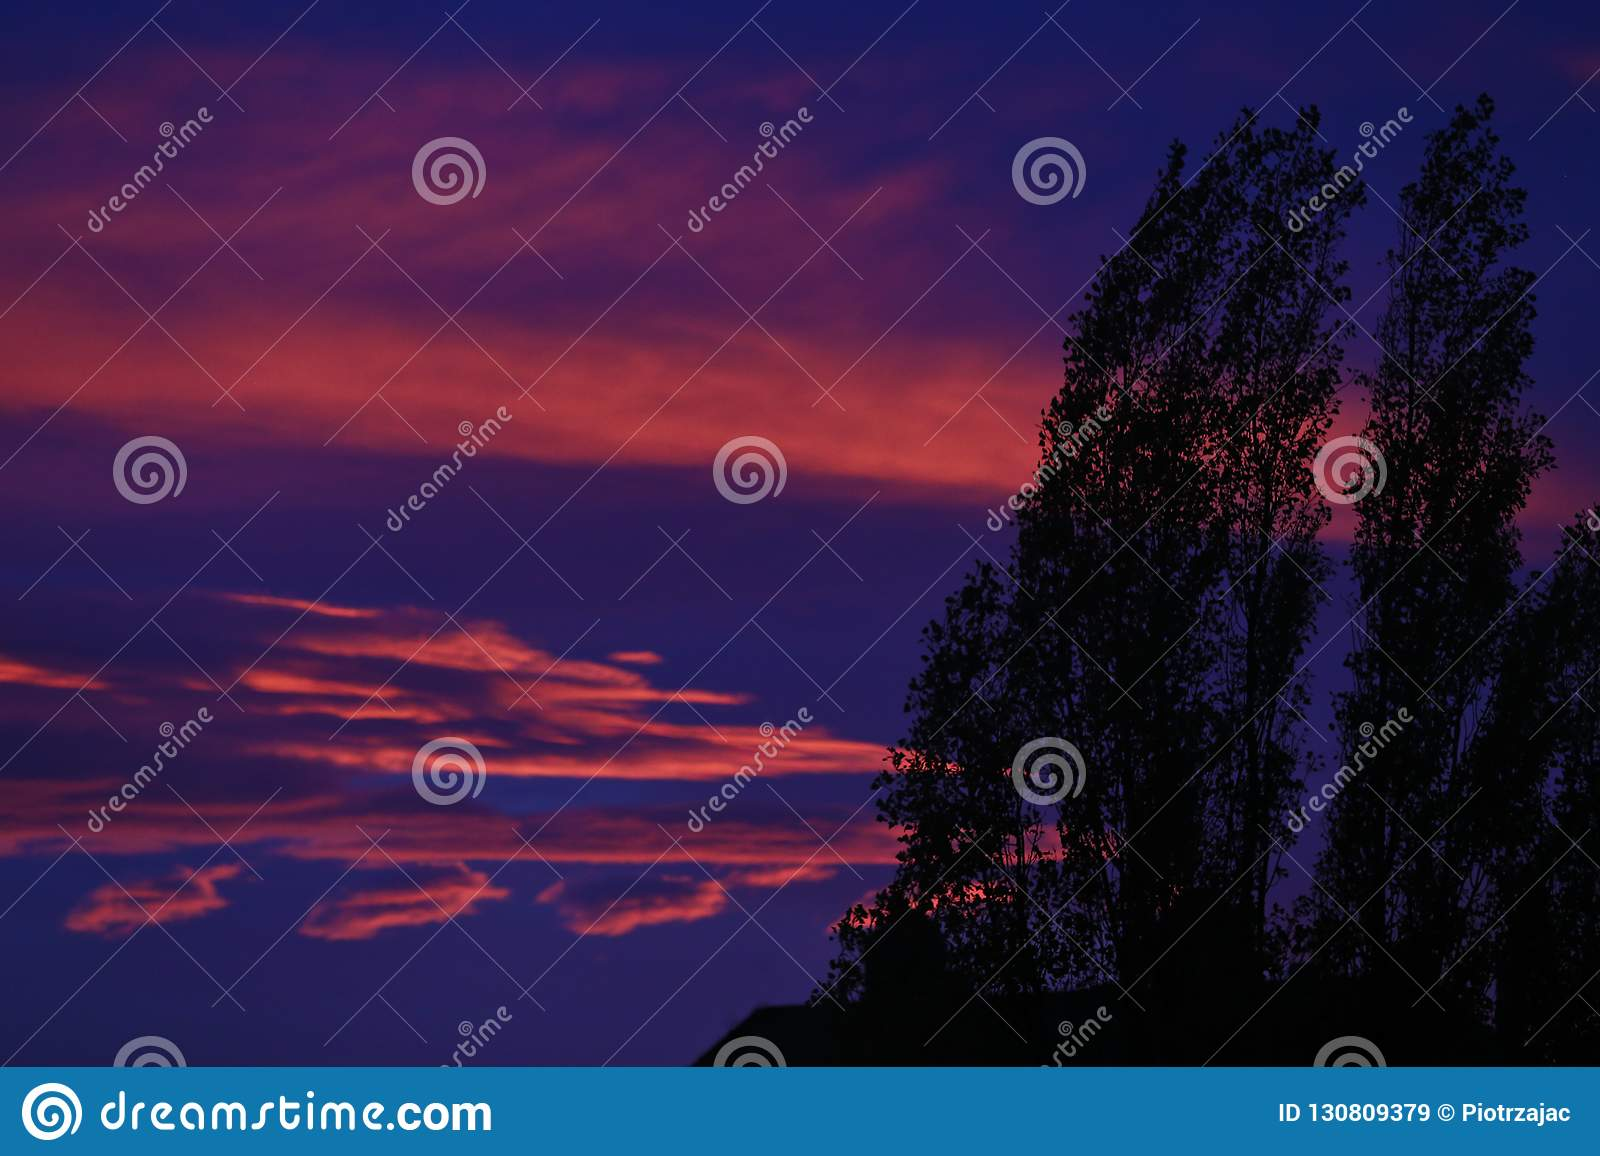 Contour of trees with colorful sunset